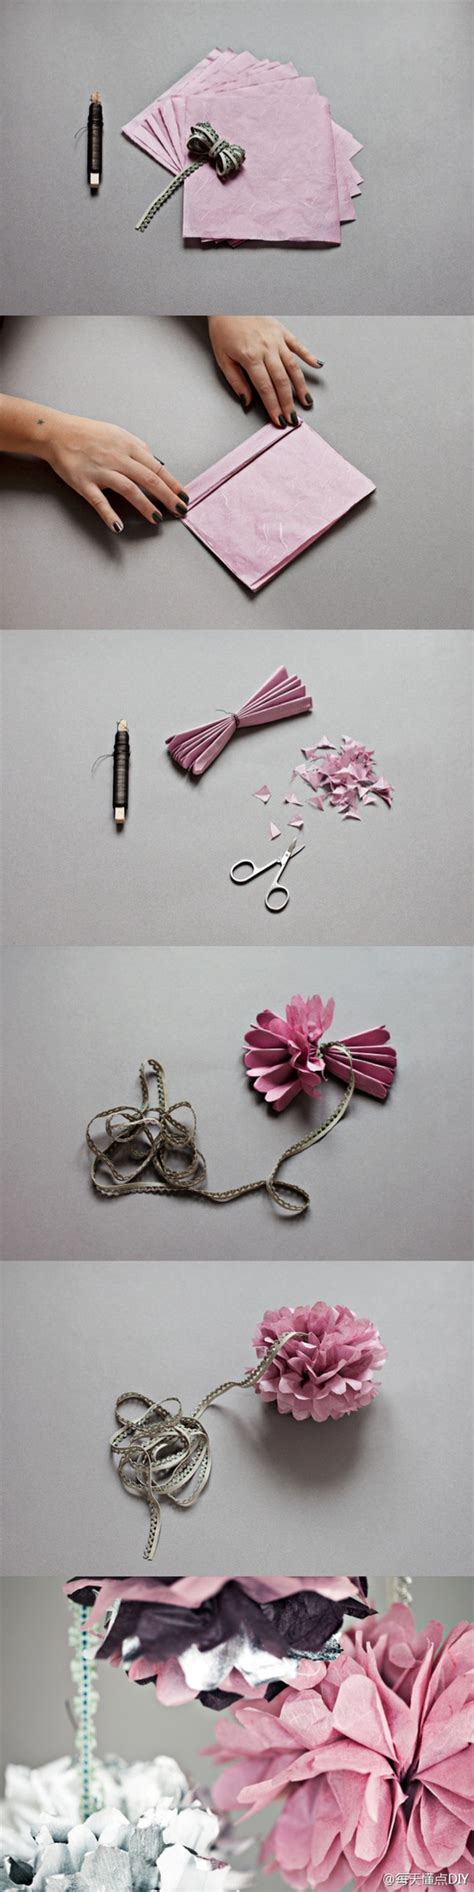 Handmade Tips - 10 diy crafts ideas for diy ideas tips